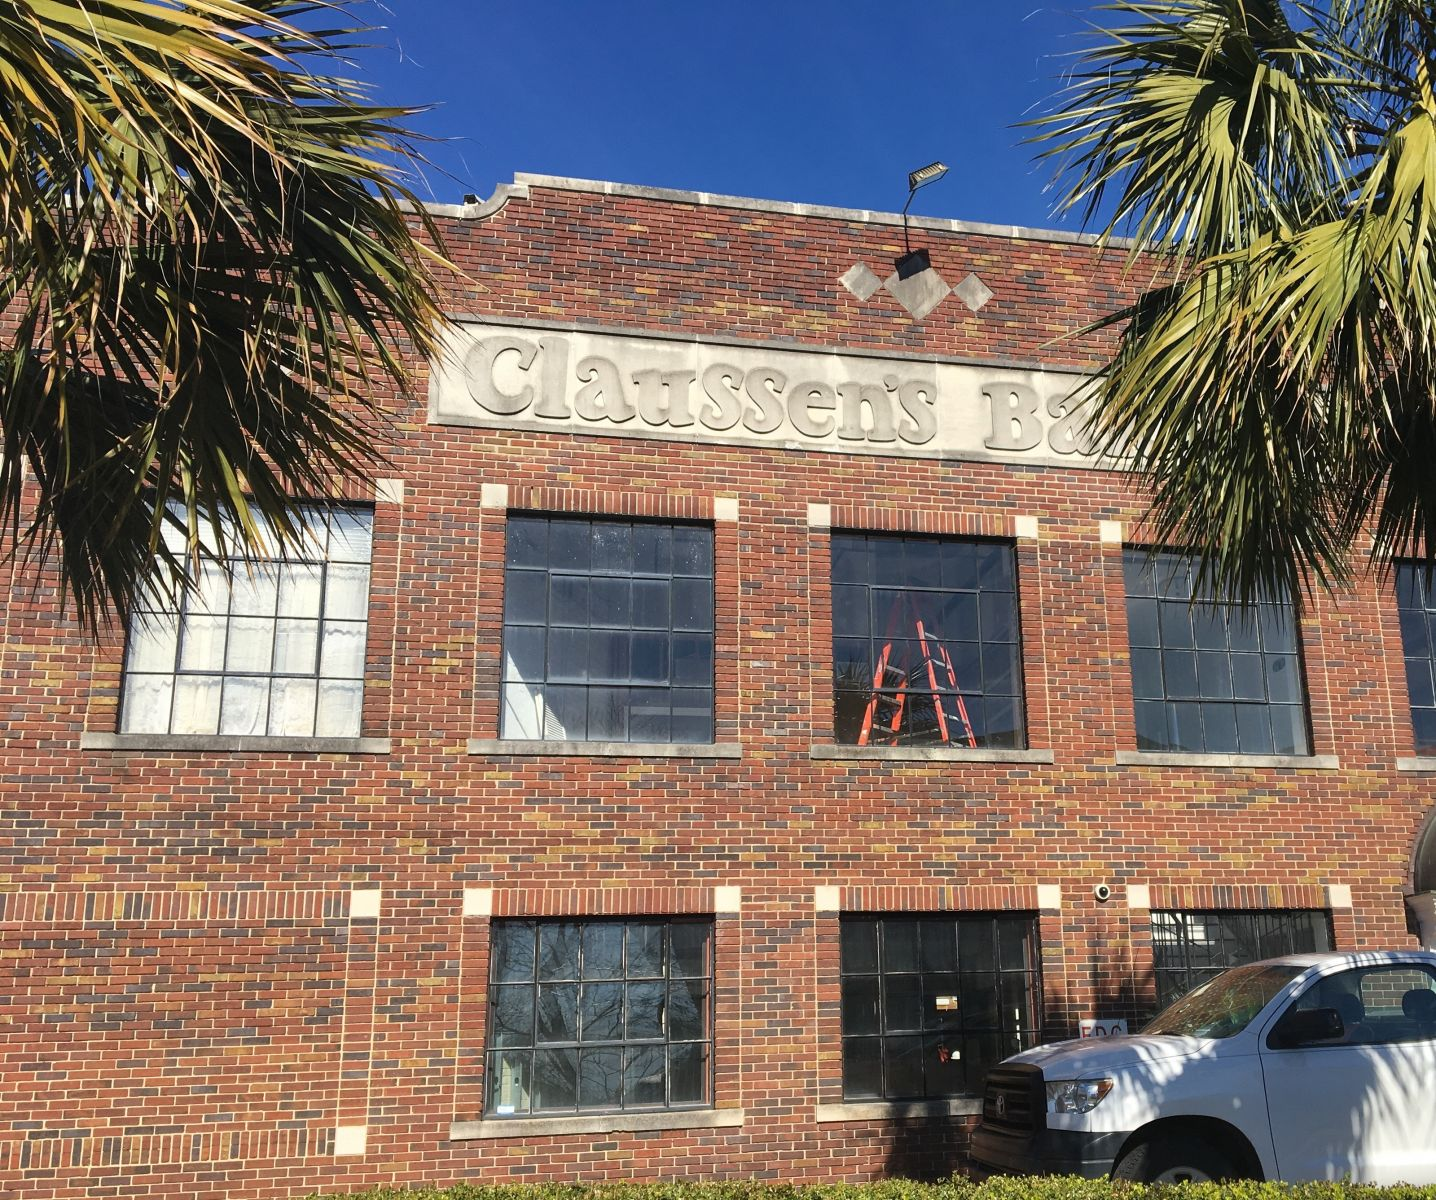 Claussen's in Five Points is being renovated into 29 boutique apartments slated for occupancy in March. (Photo/Melinda Waldrop)